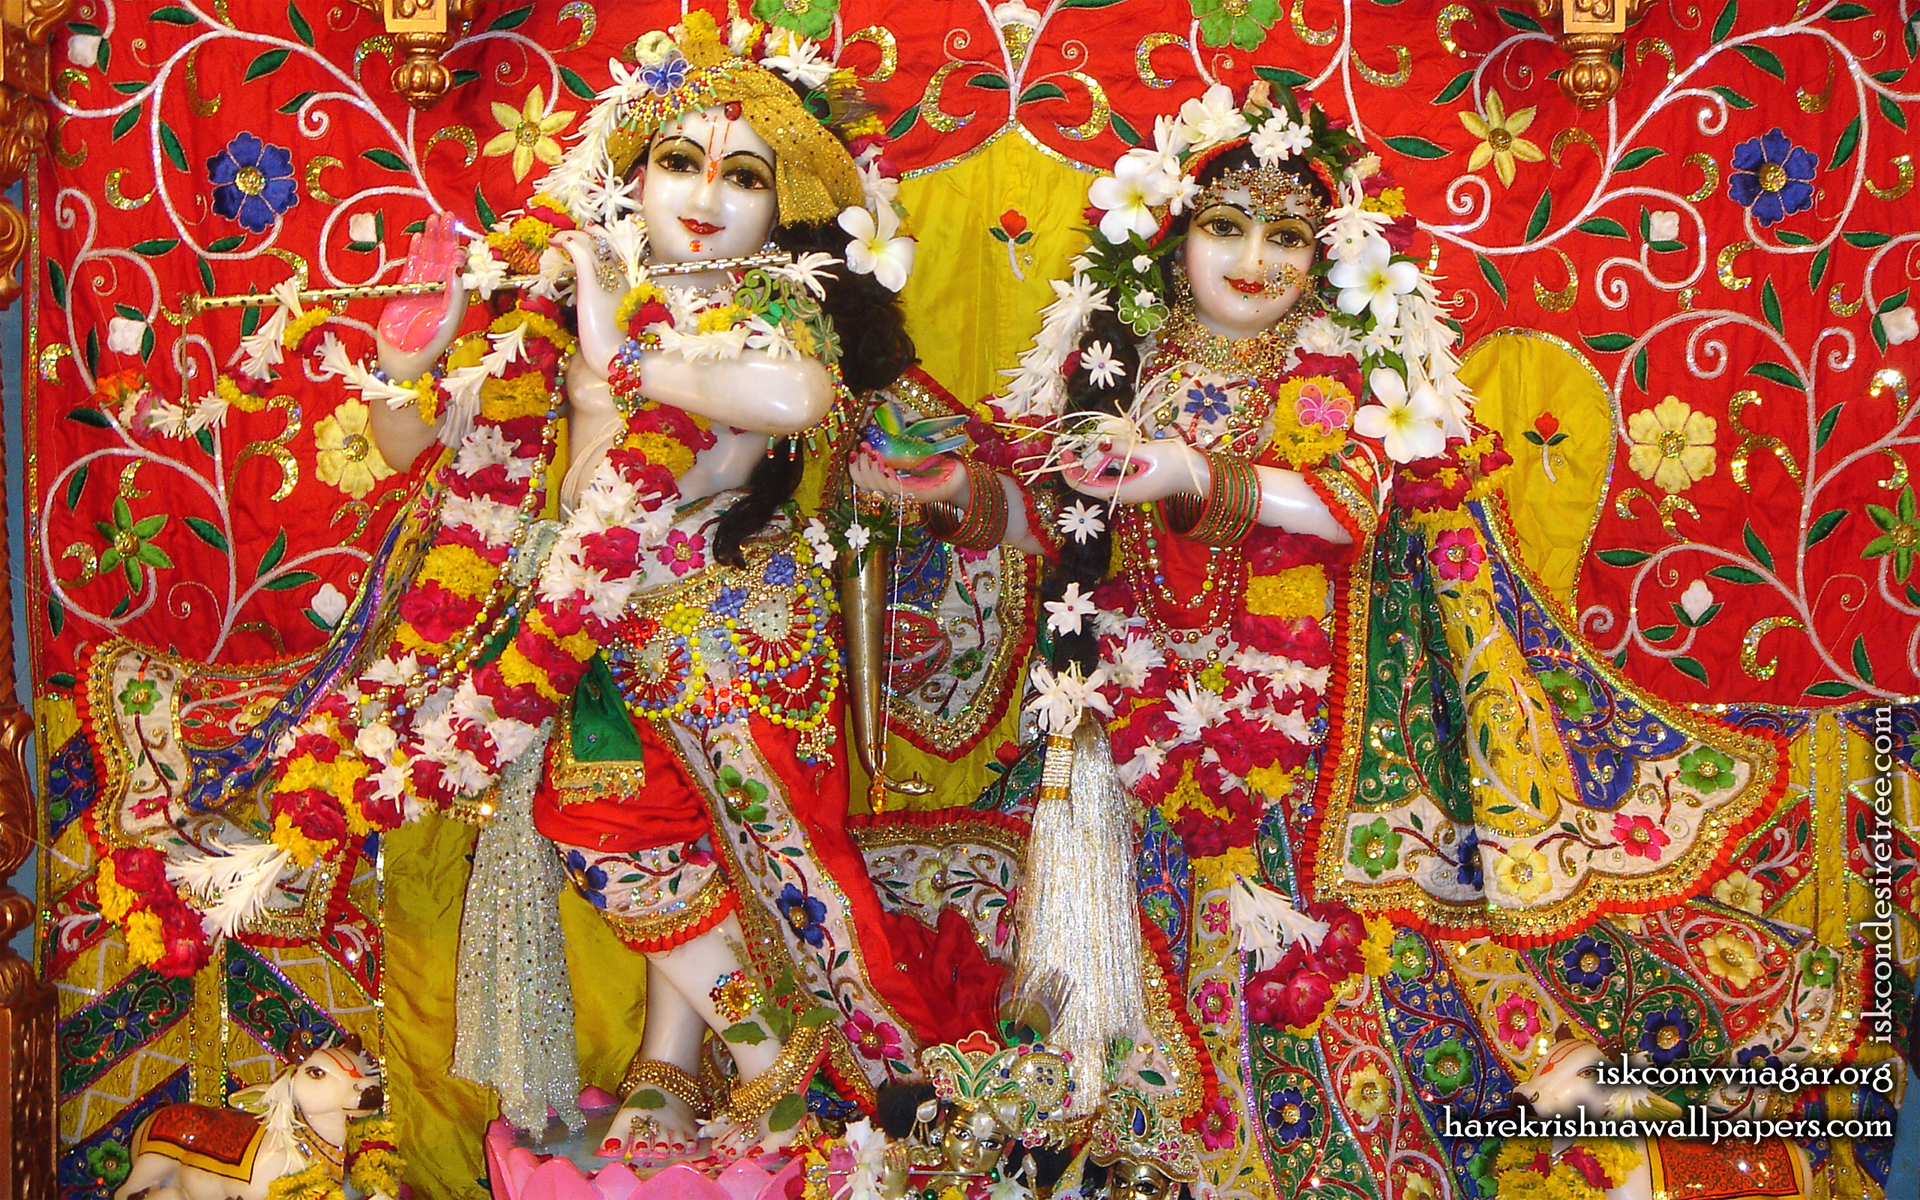 Sri Sri Radha Giridhari Wallpaper (013) Size 1920x1200 Download